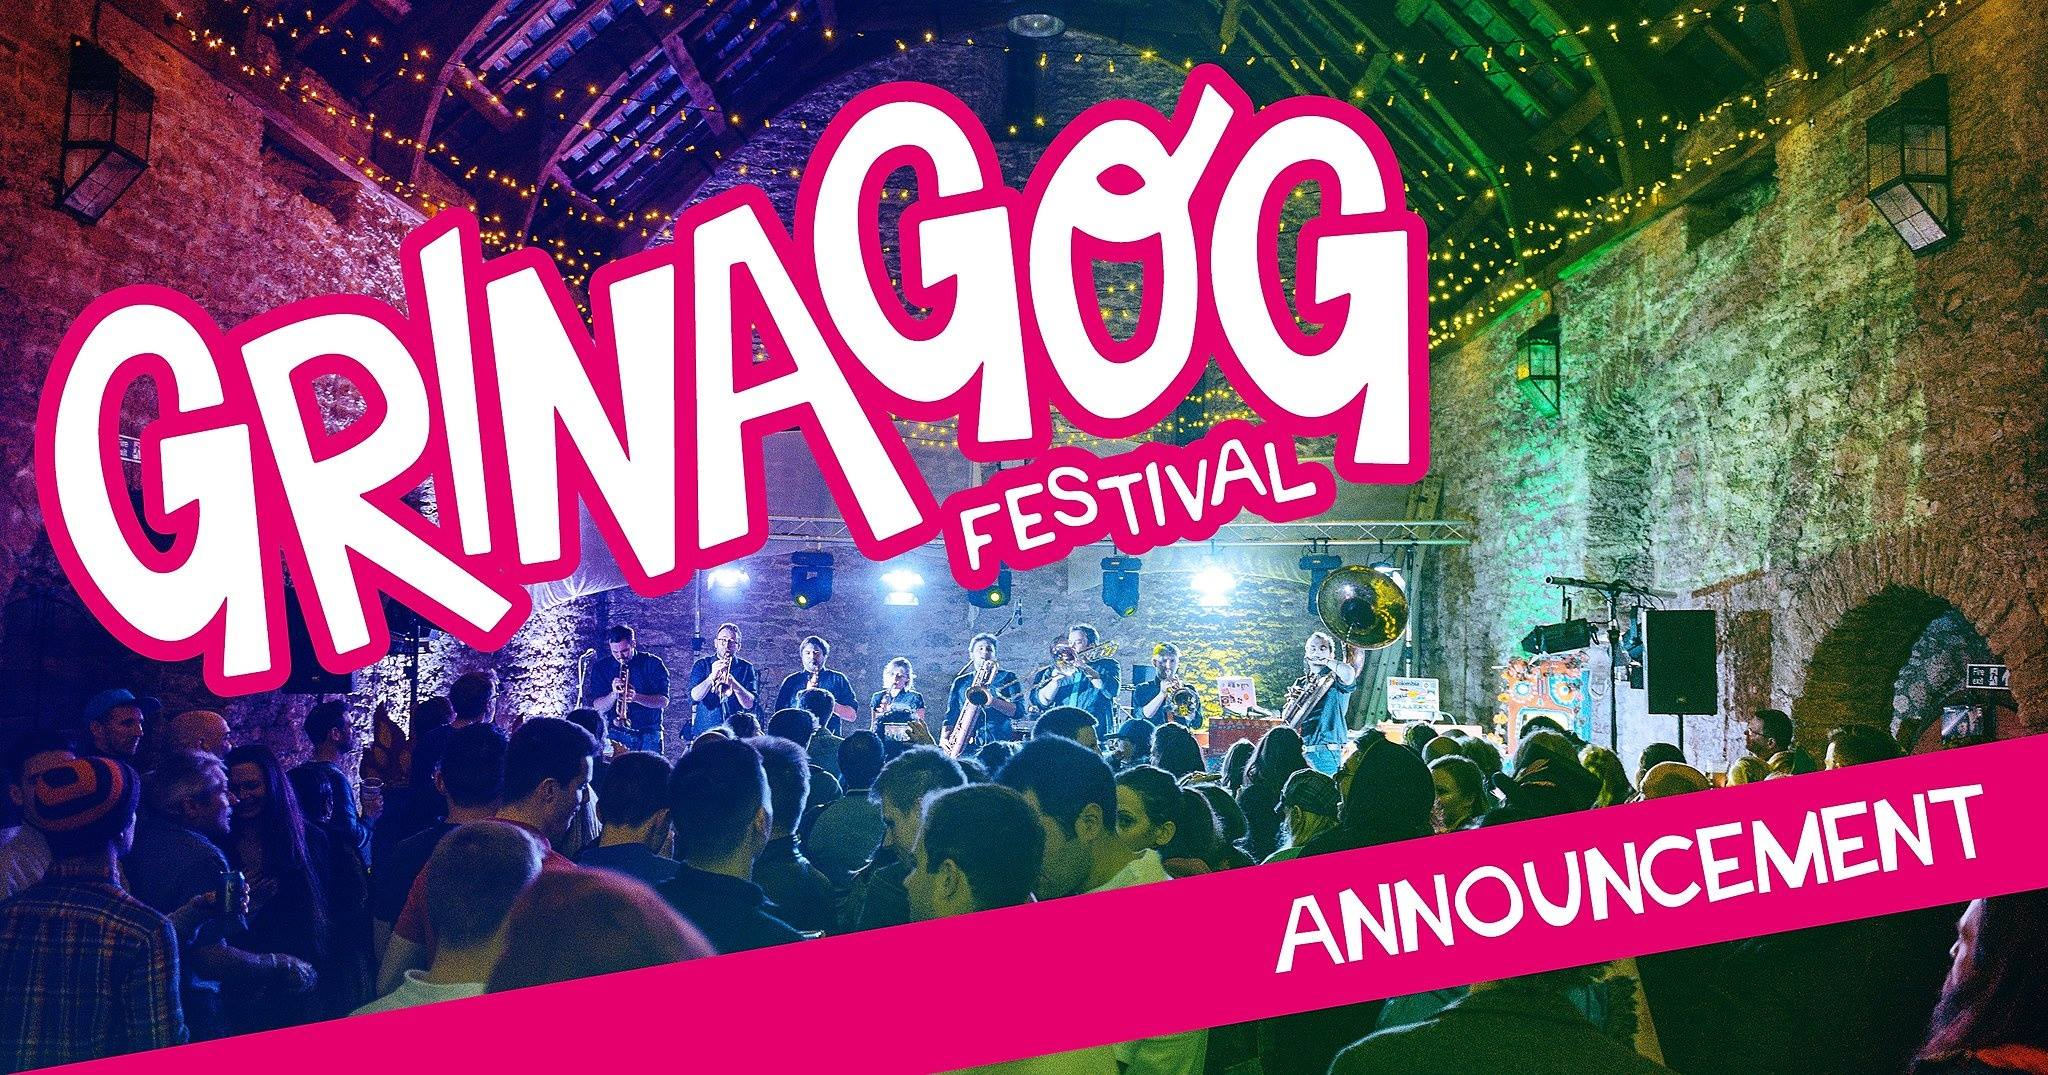 *Grinagog Announcement* Grinners, we are saddened to say there will be no Grinag...